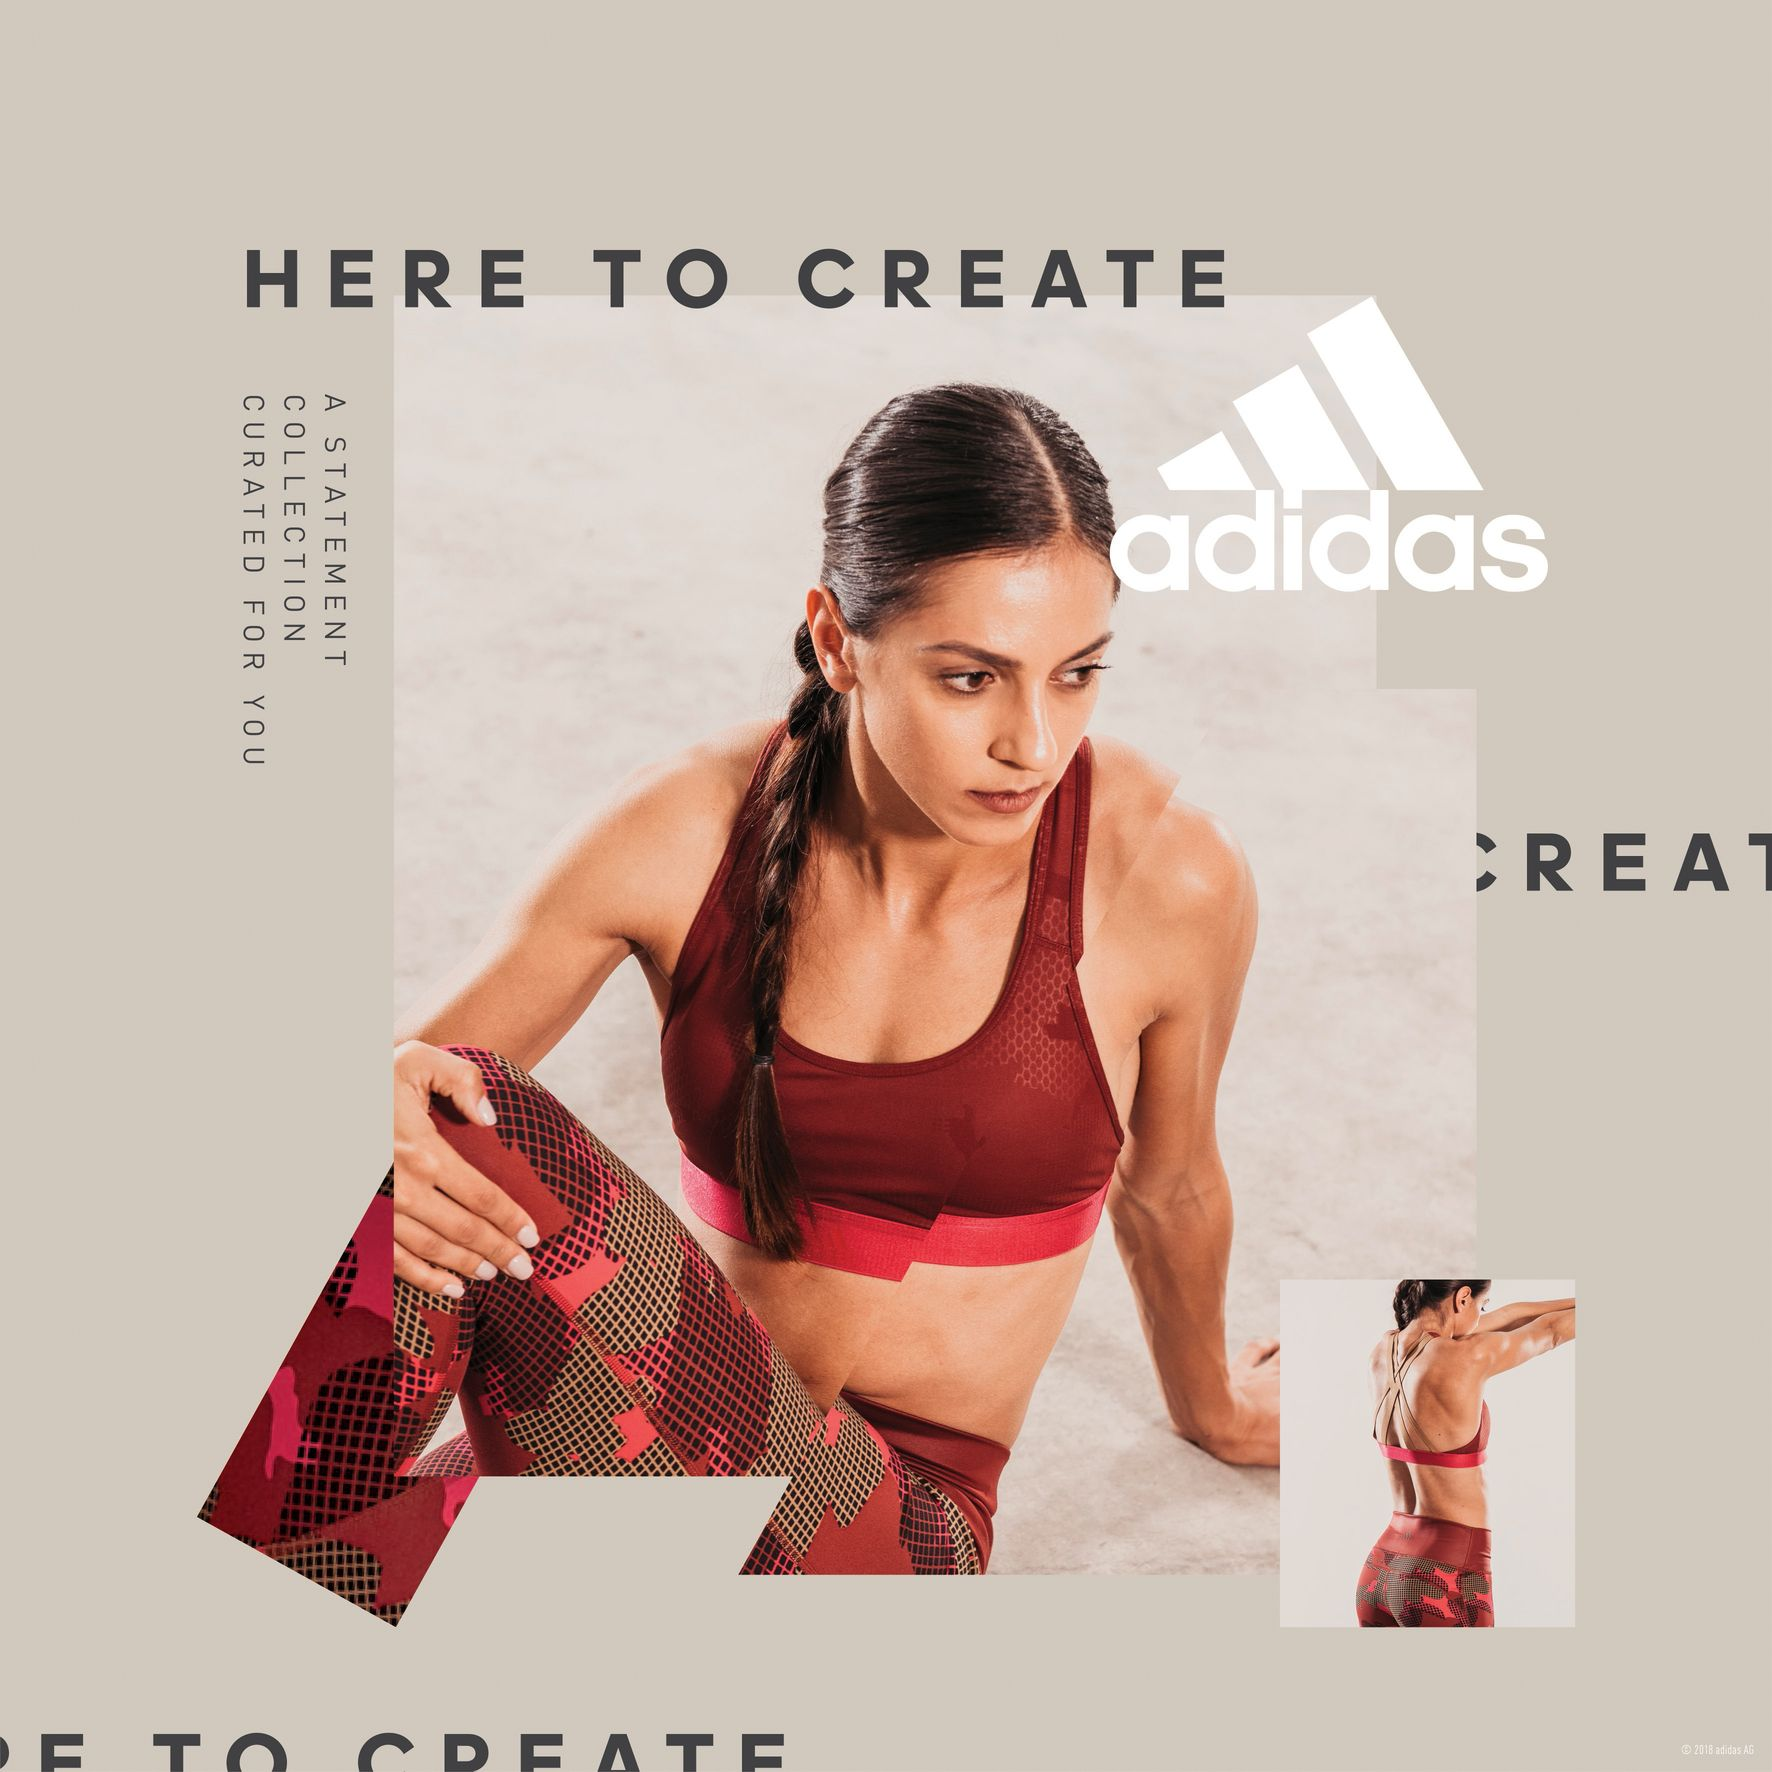 Adidas Women Statement Collection - Elissavet Pesiridou